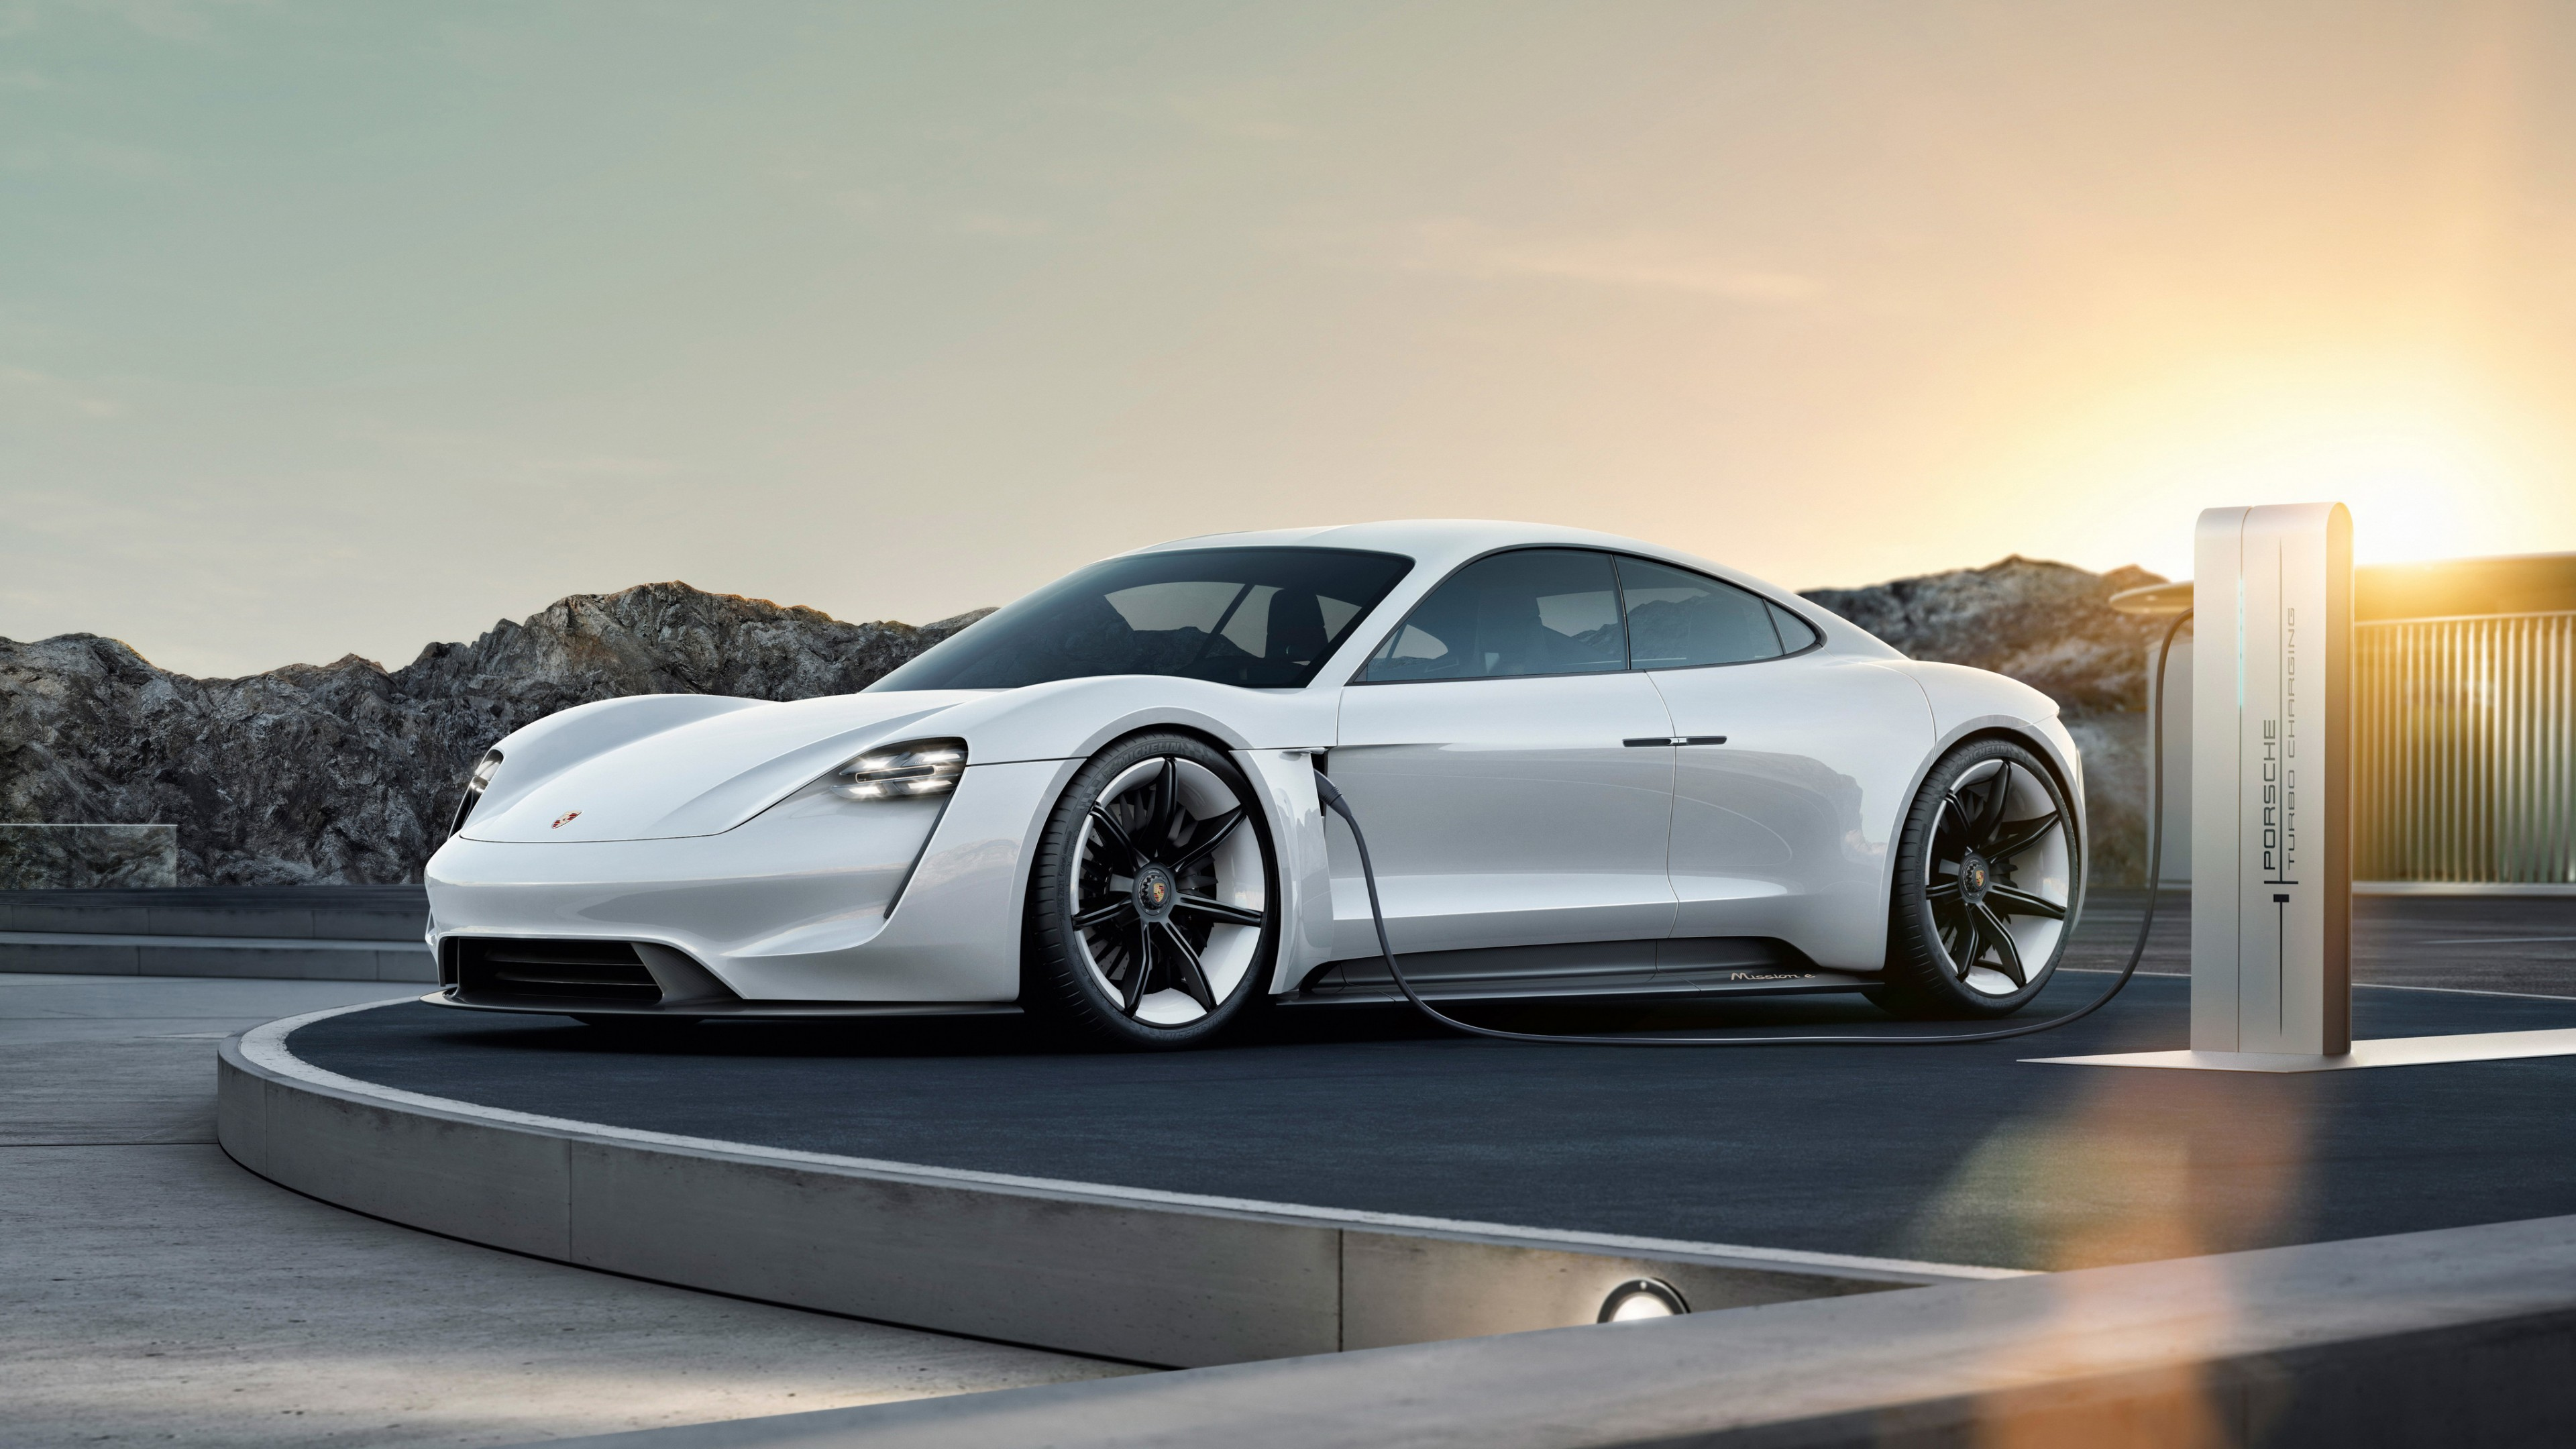 Wallpaper Porsche Taycan Electric Car supercar 2020 Cars 4K 3840x2160